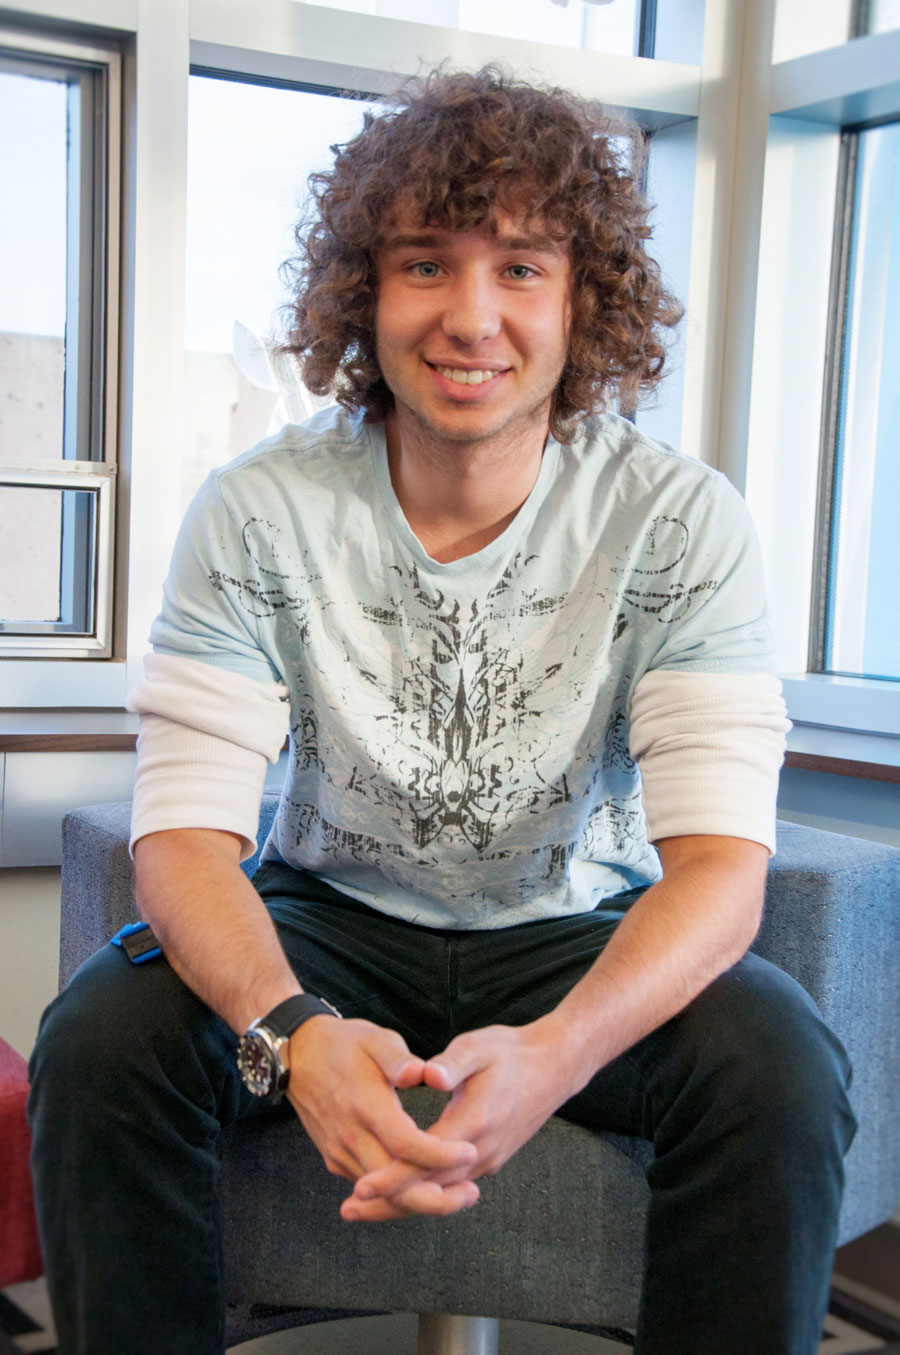 young man with curly hair sitting on chair, leaning forward, fingers interlocked